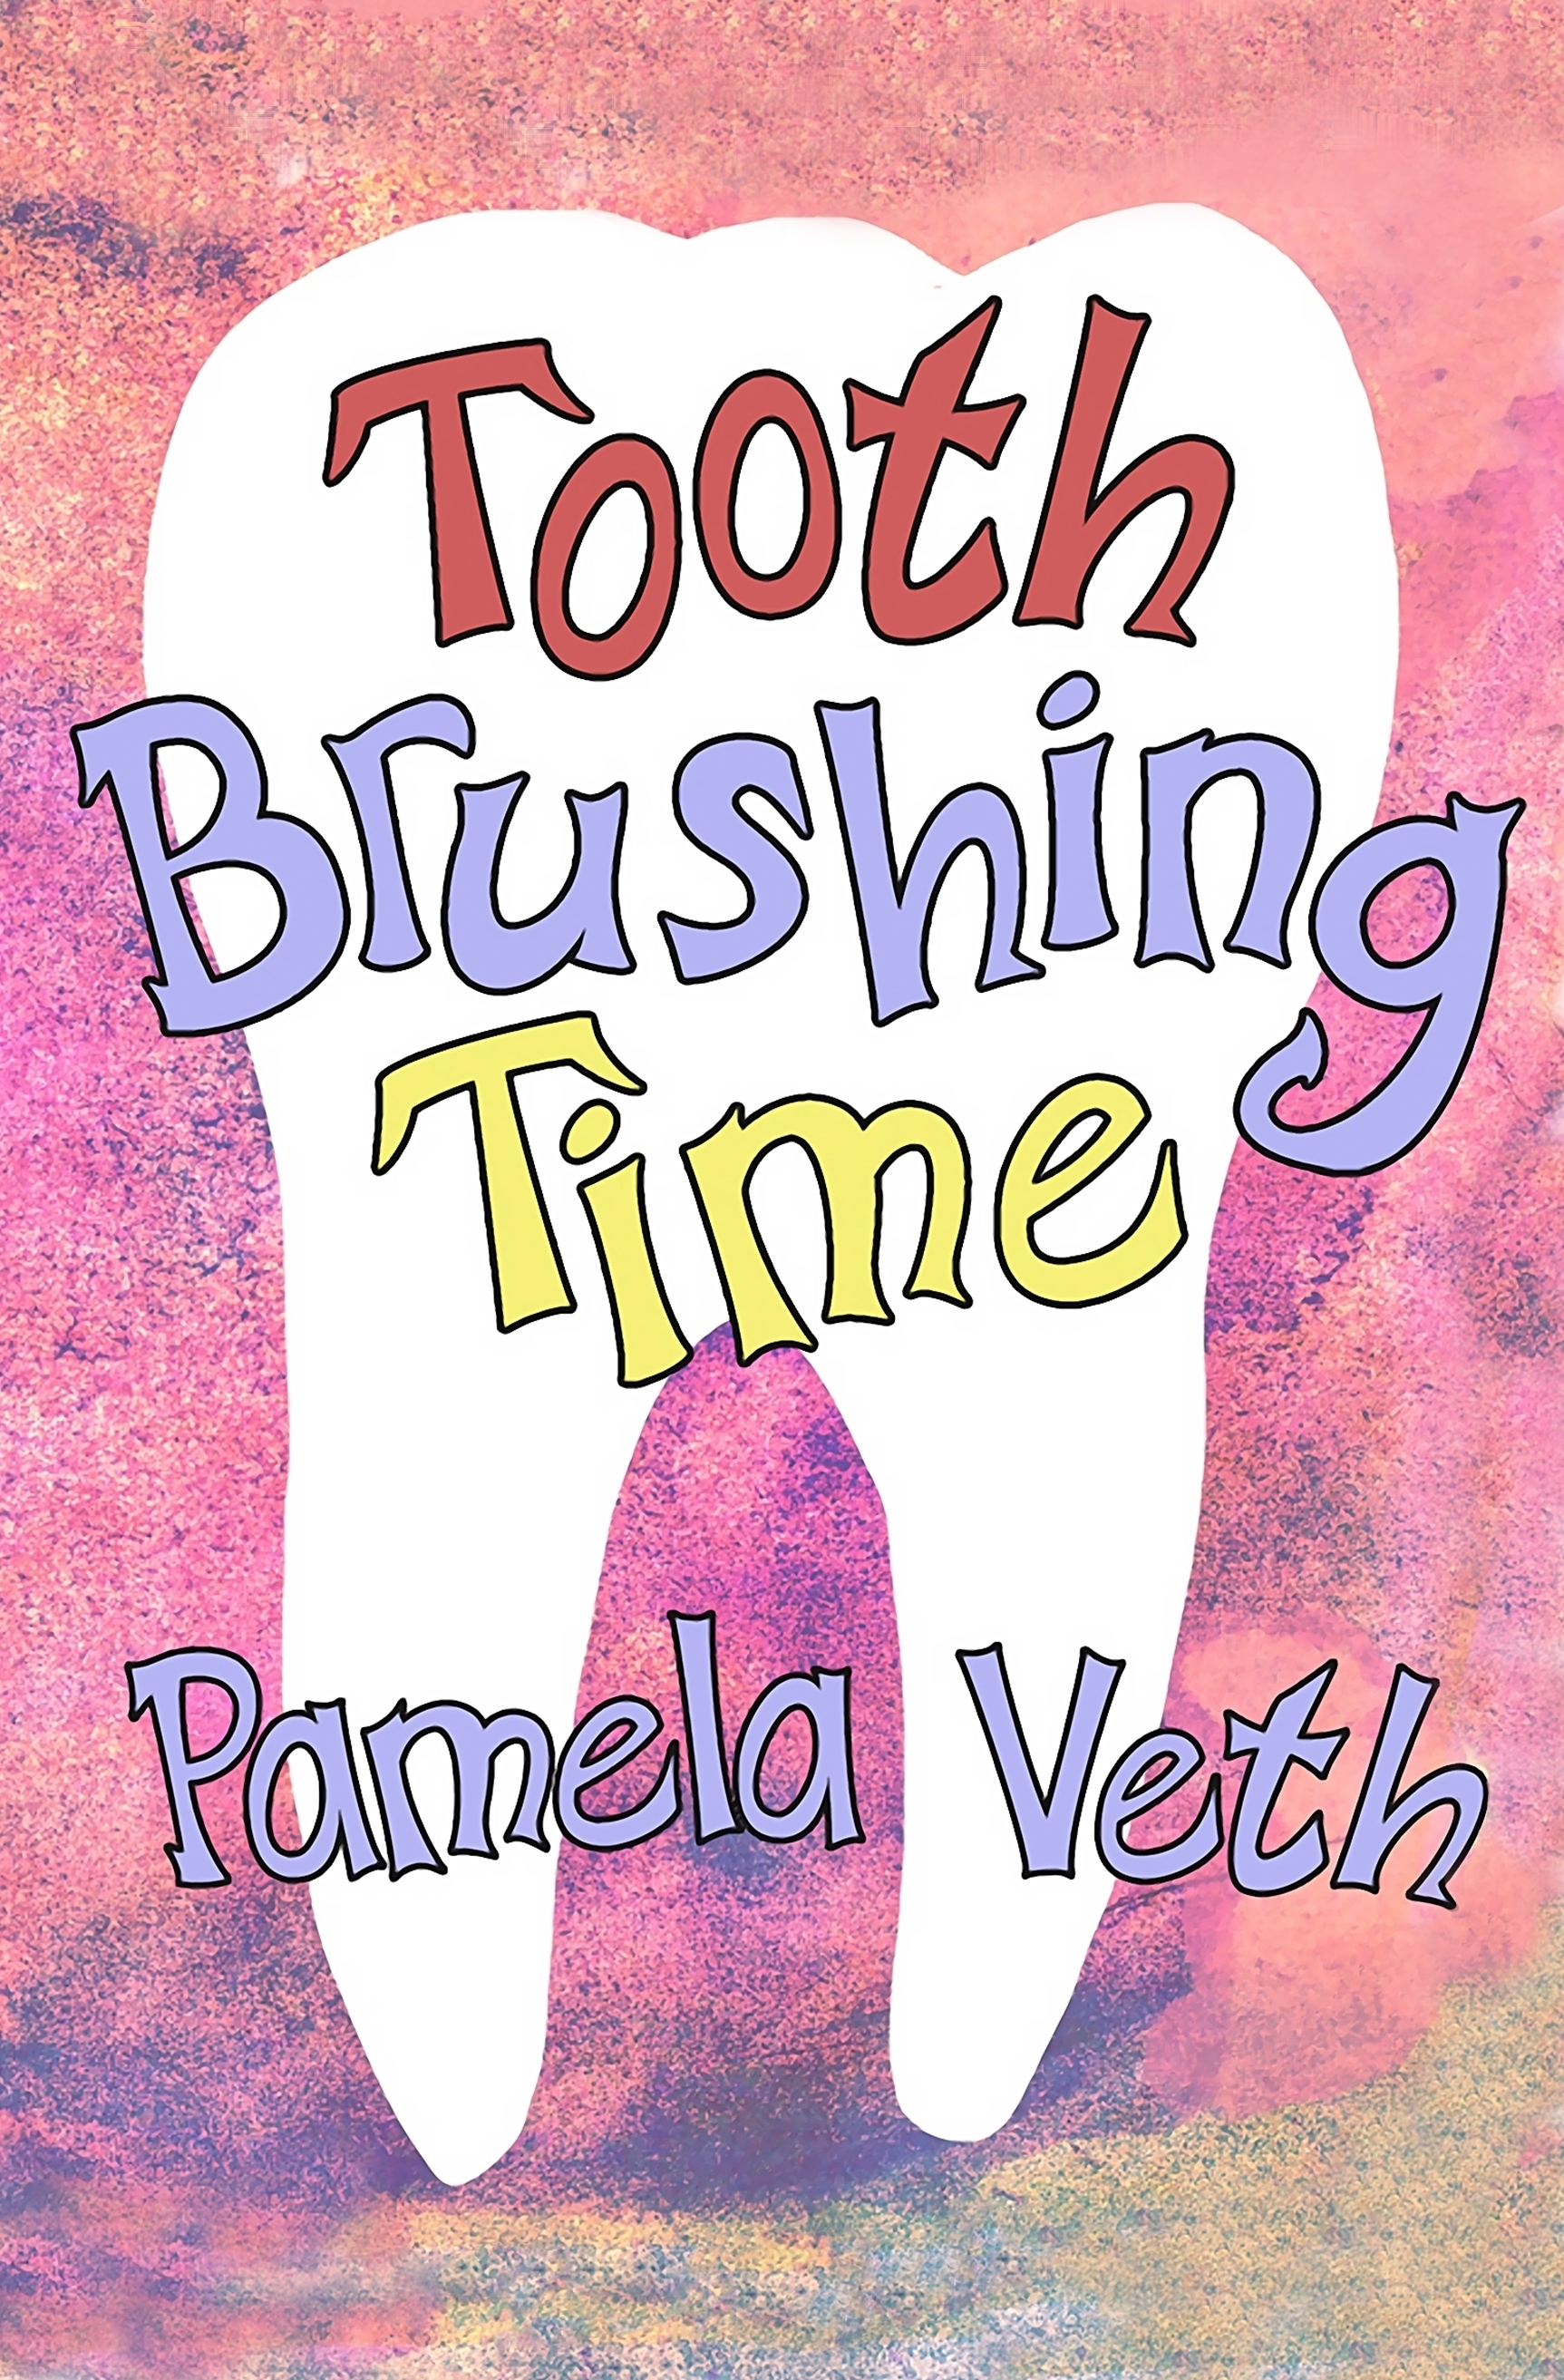 New Children's Book, 'Tooth Brushing Time,' is Released